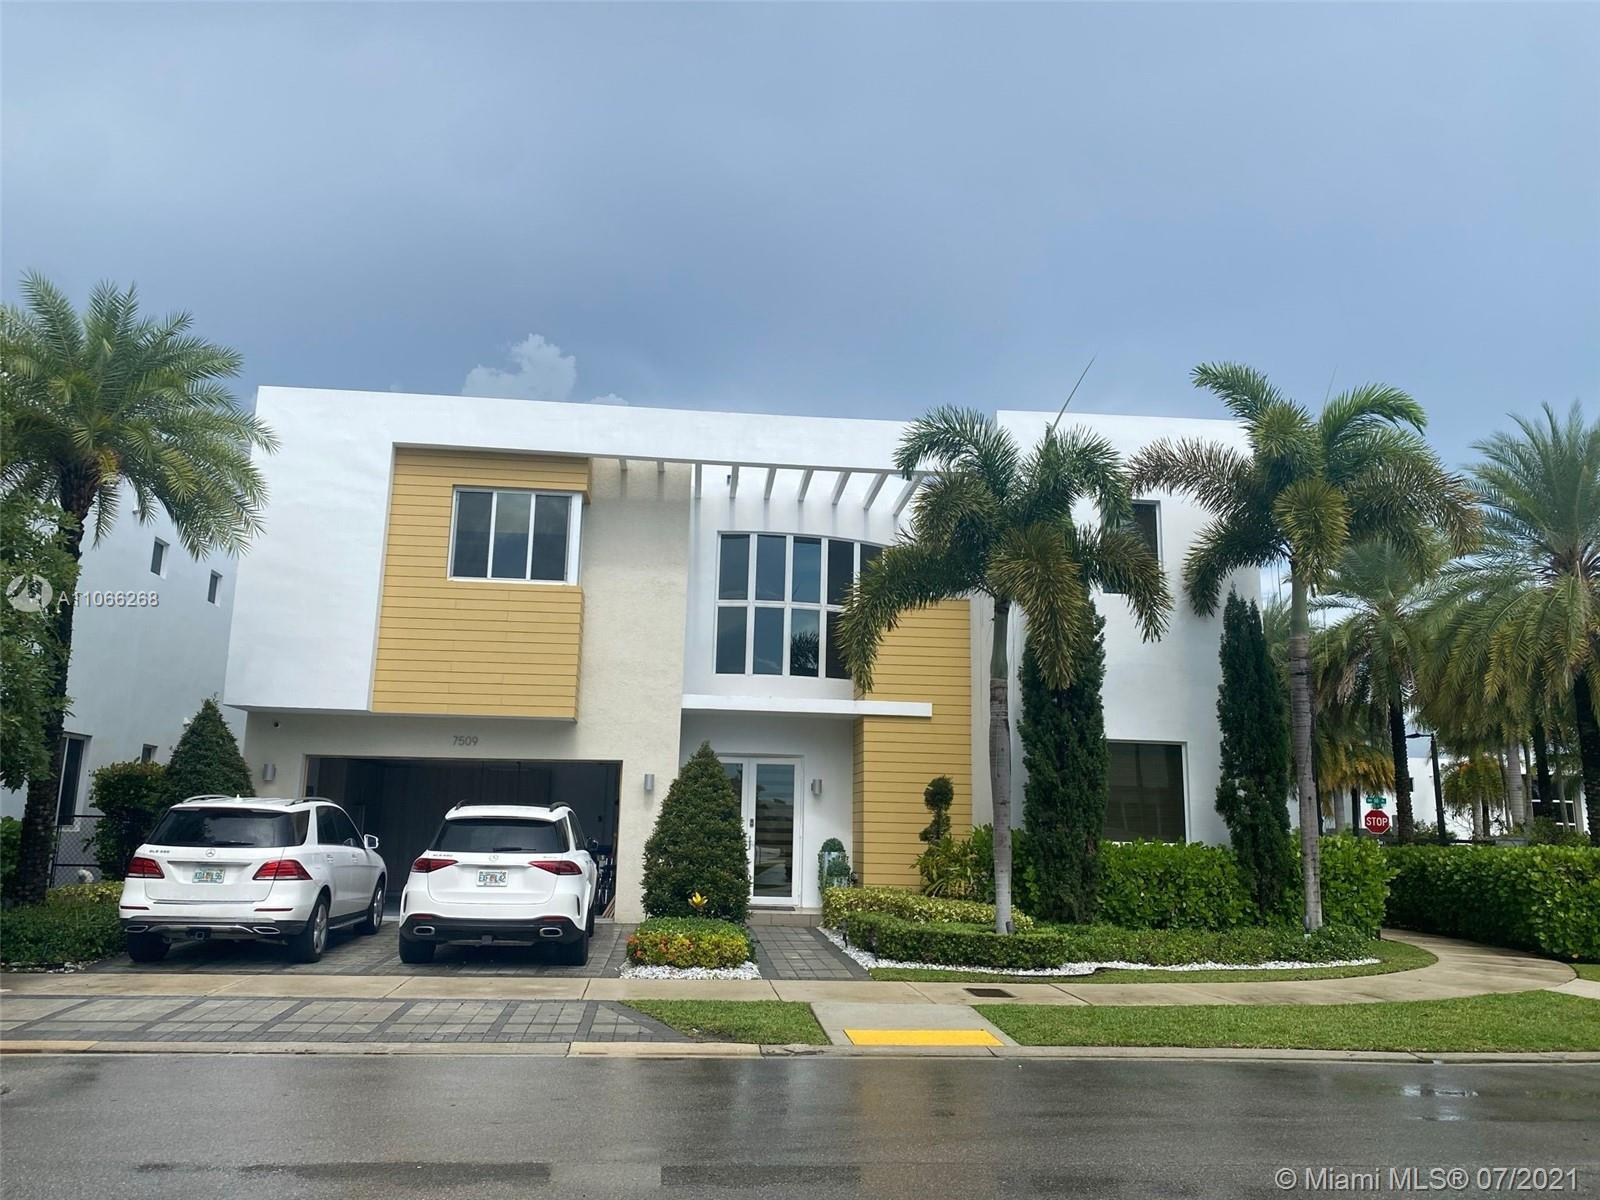 Photo of 7509 NW 99th Ave, Doral, FL 33178